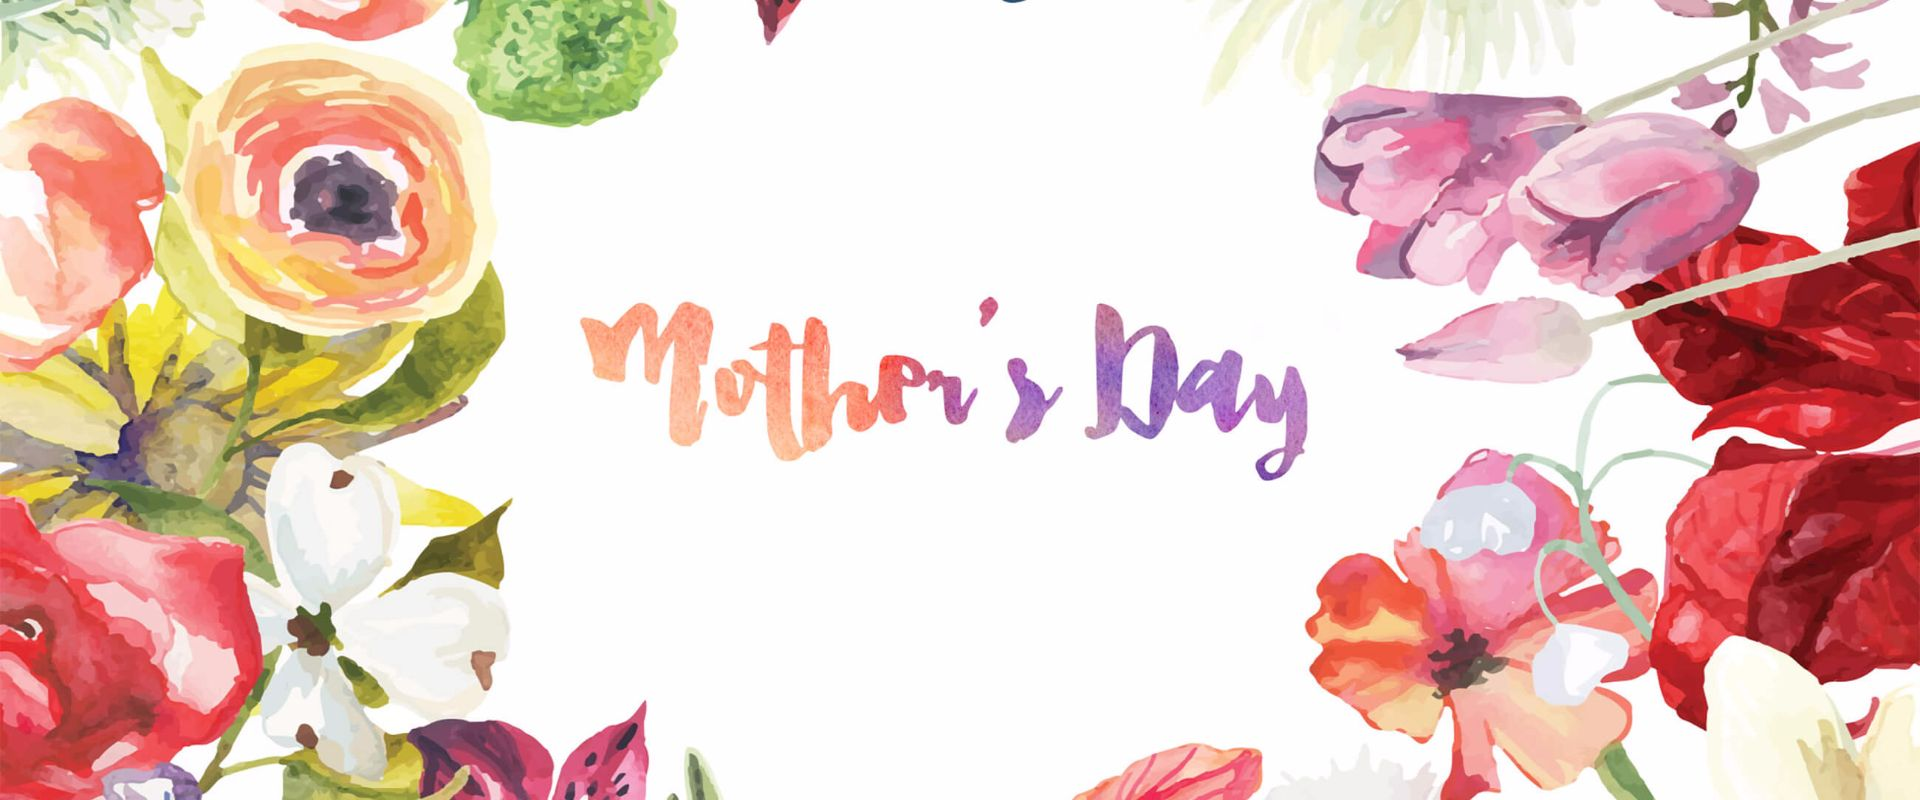 Mother's Day Gifts | Buy Posters, Frames, Canvas, Digital Art & Large Size Prints